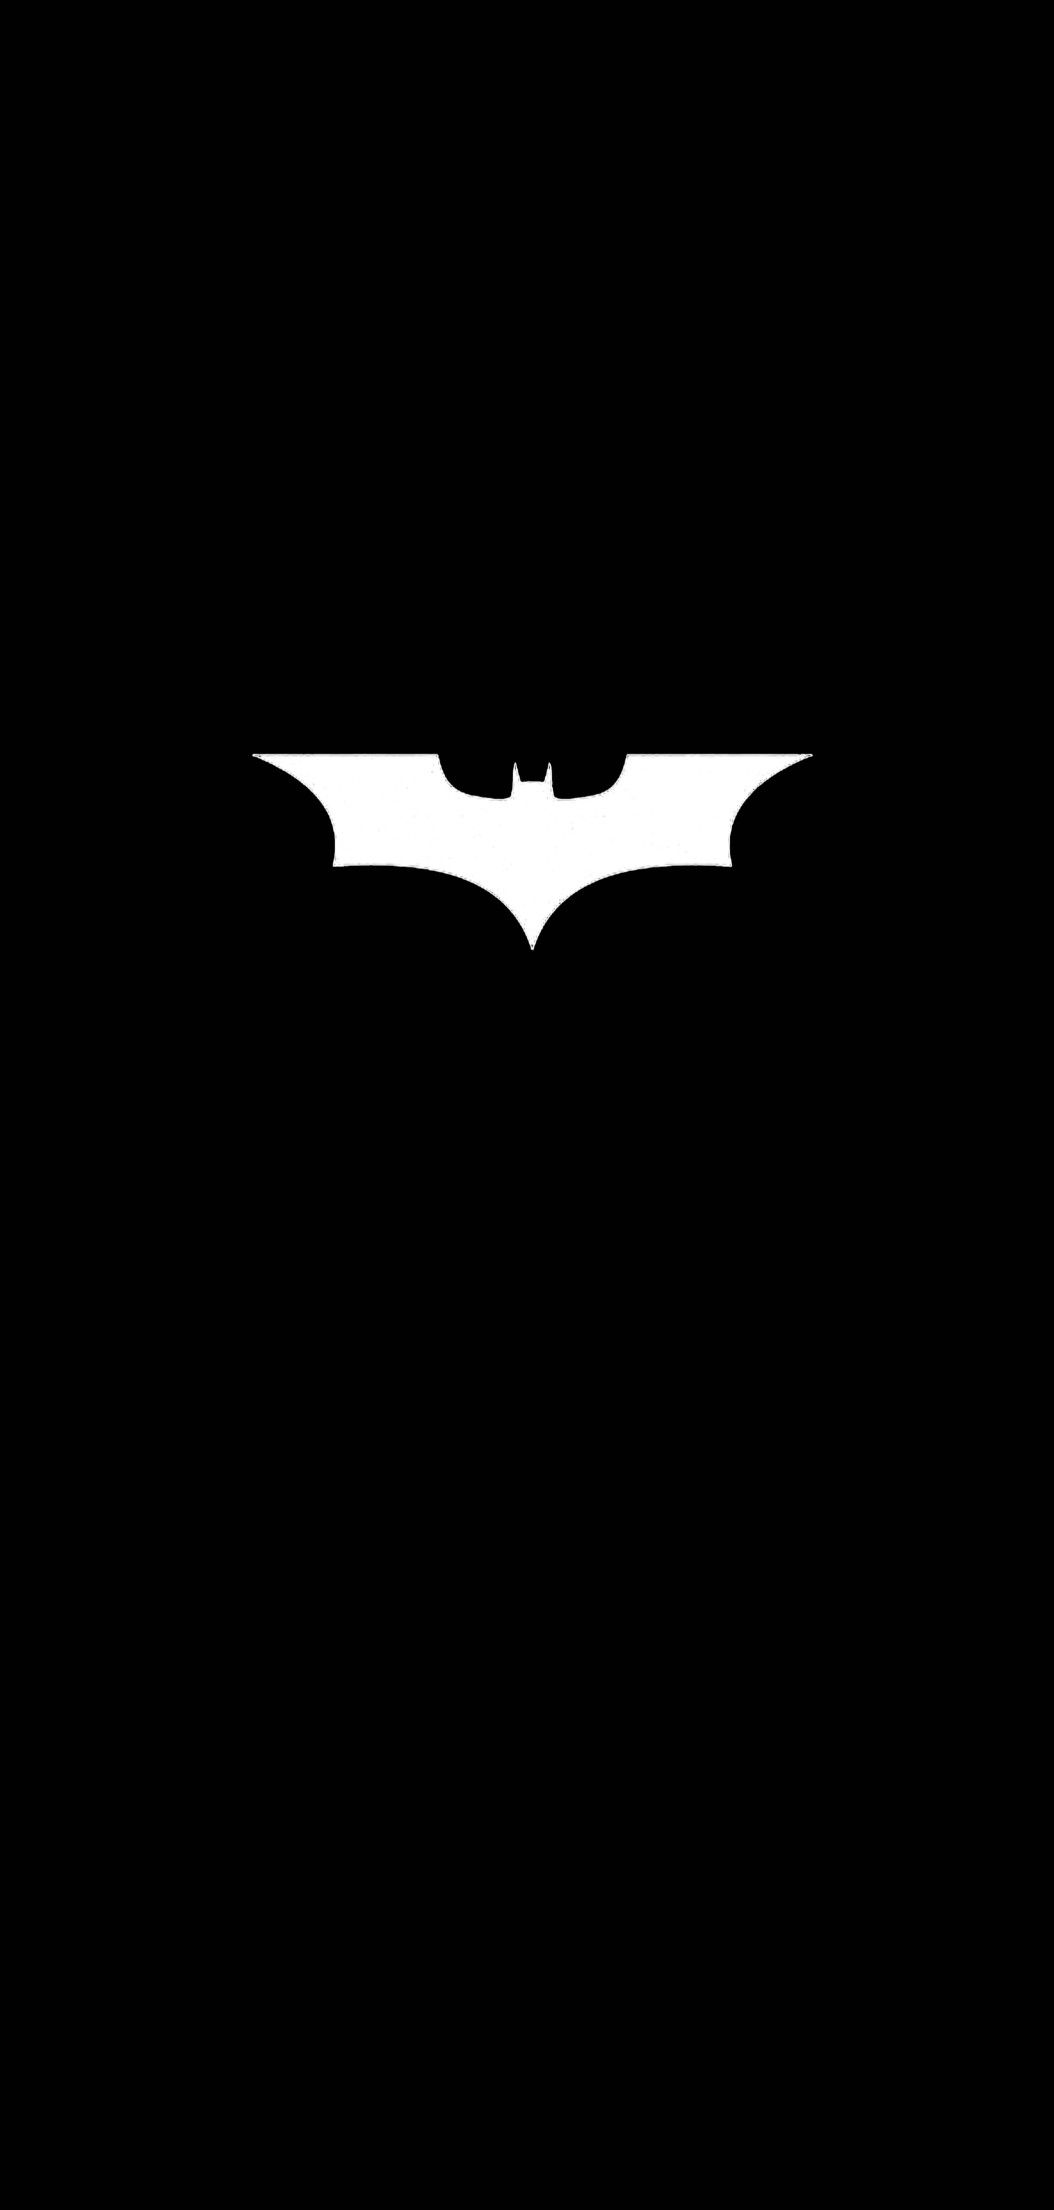 Batman Logo Black And White Dark Wallpaper Iphone City Wallpaper Dark Wallpaper